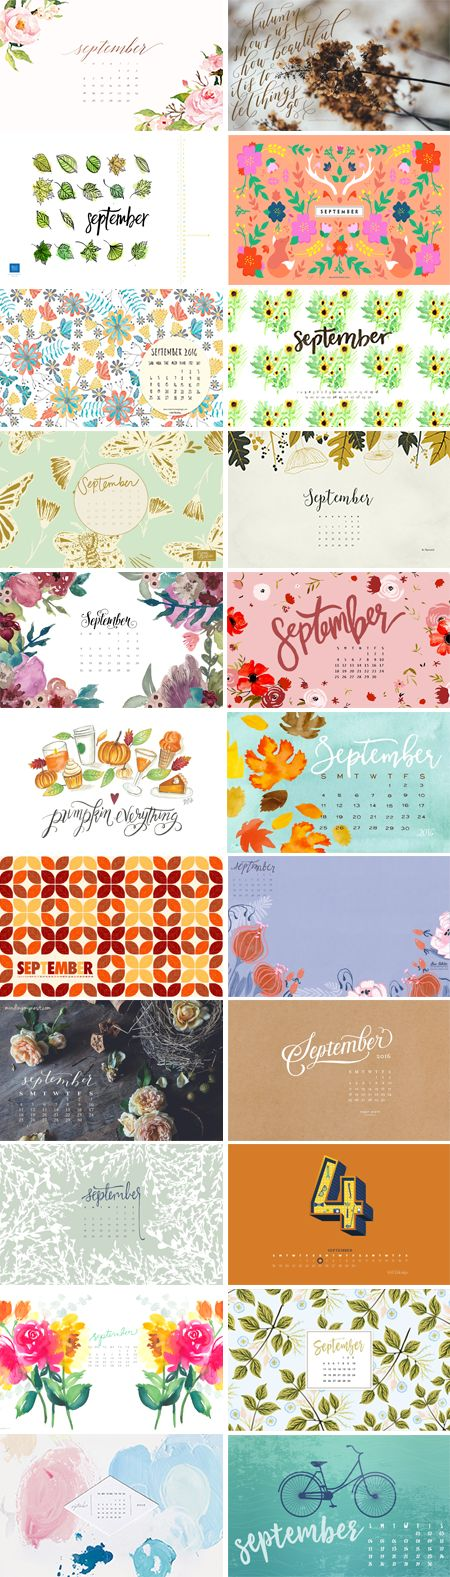 // September 2016 Wallpapers Round-up